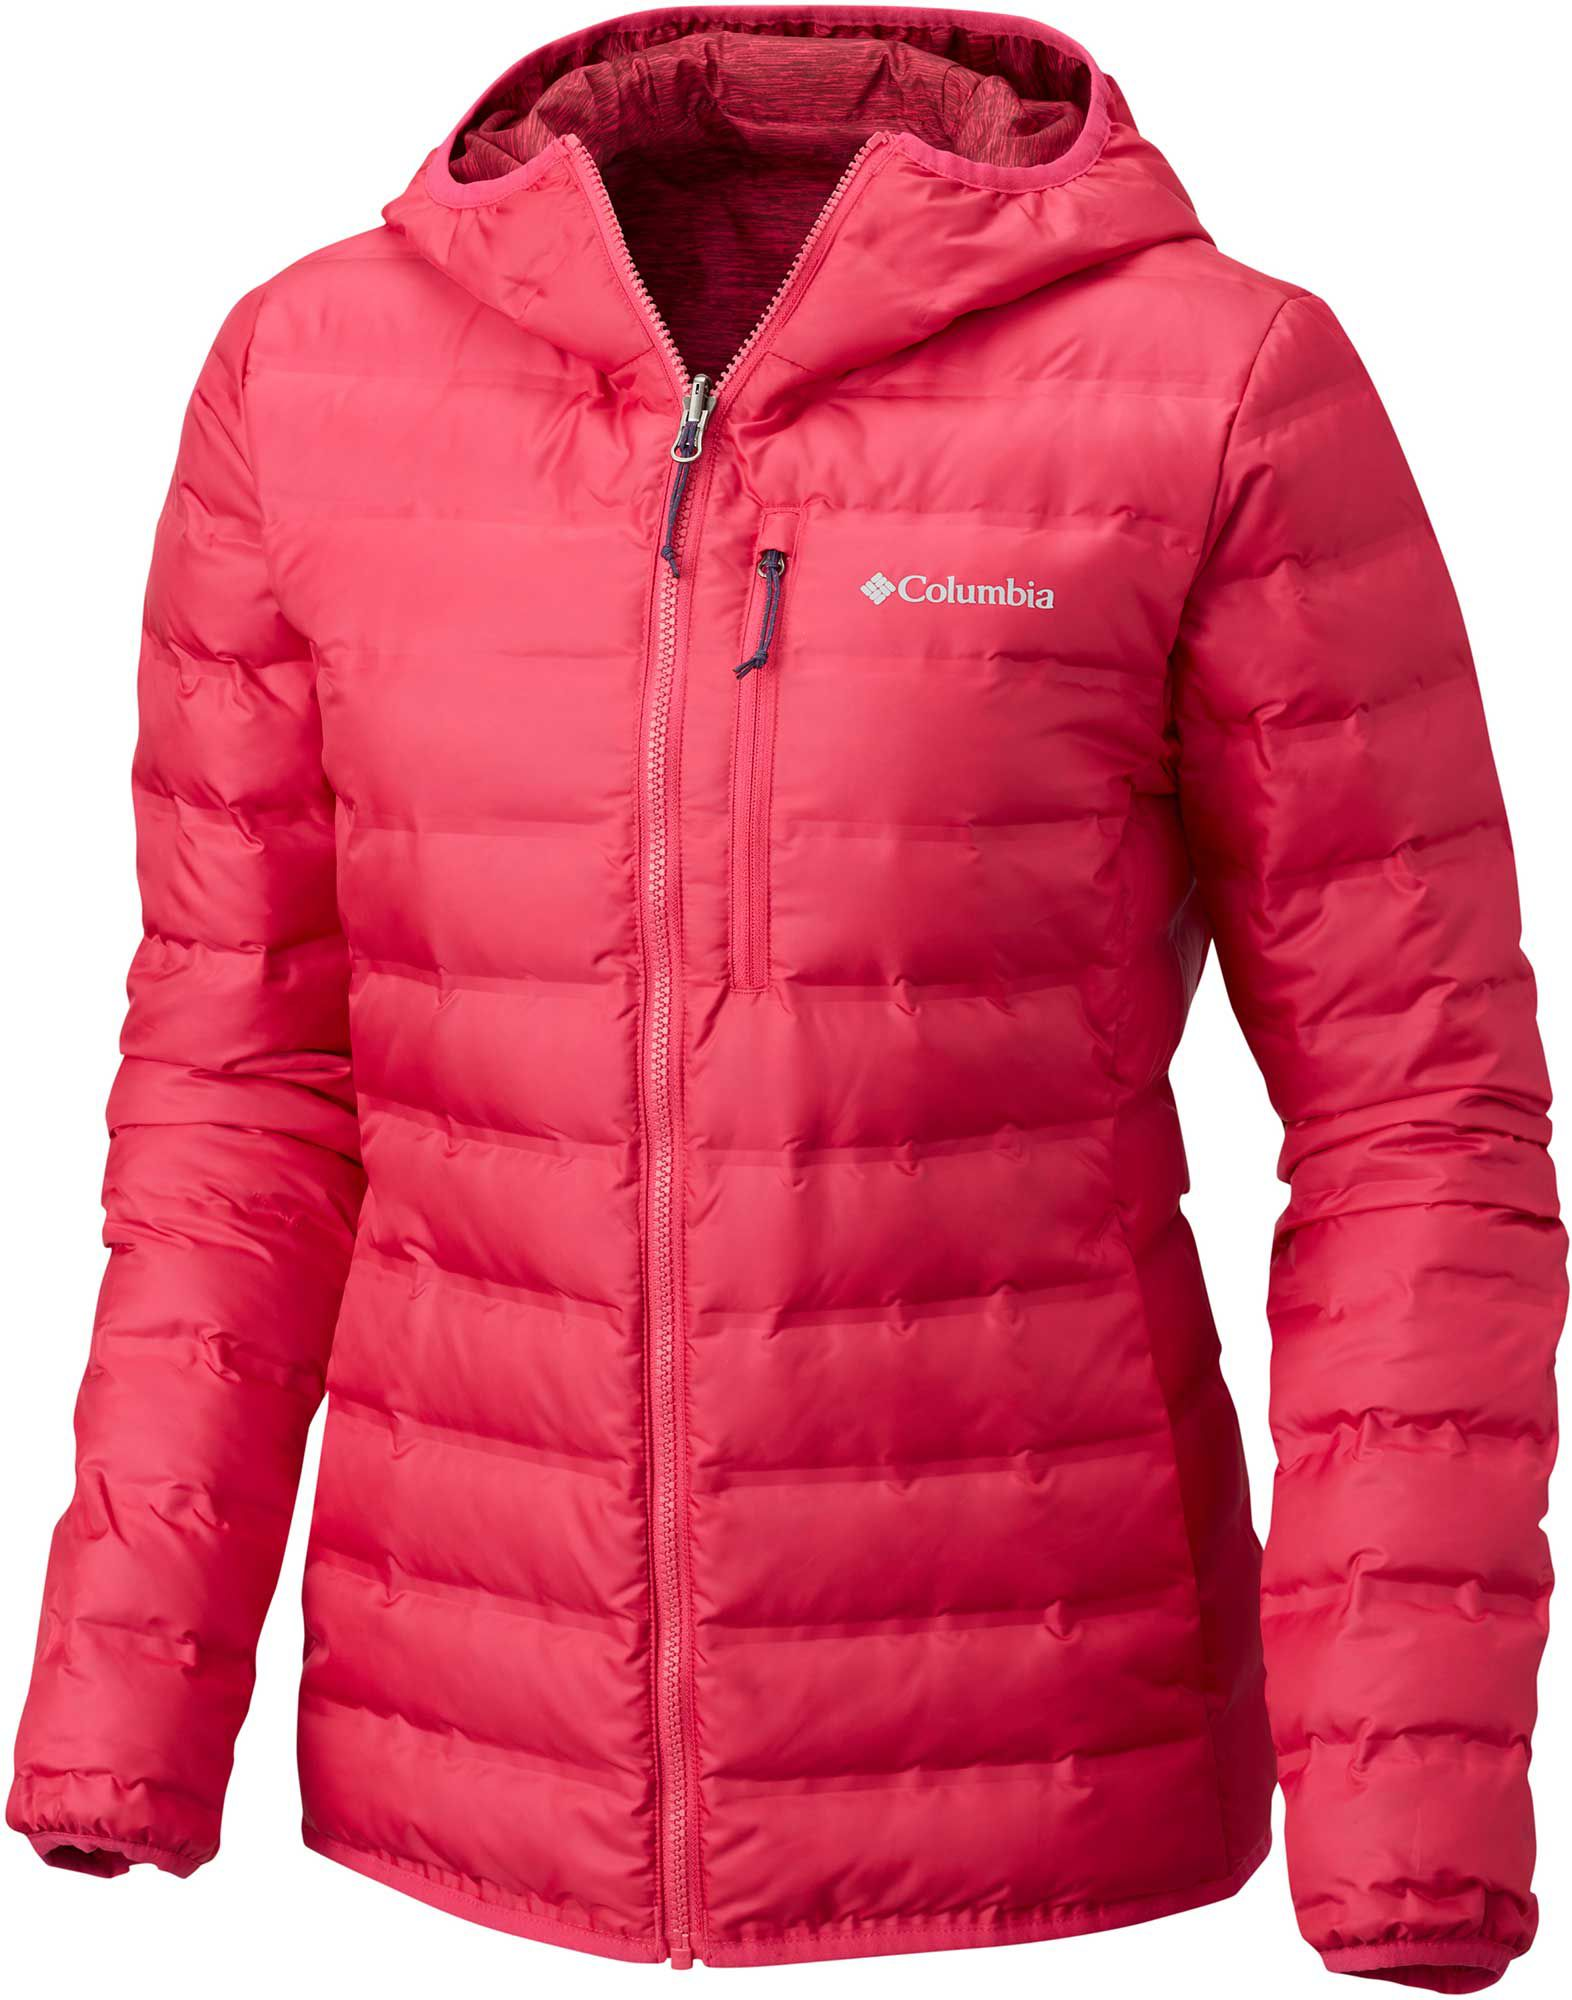 Great Deals For Sale Deals Lake 22 Reversible Hooded Jac 030 XL Columbia Cheap Sale Looking For 2tokek